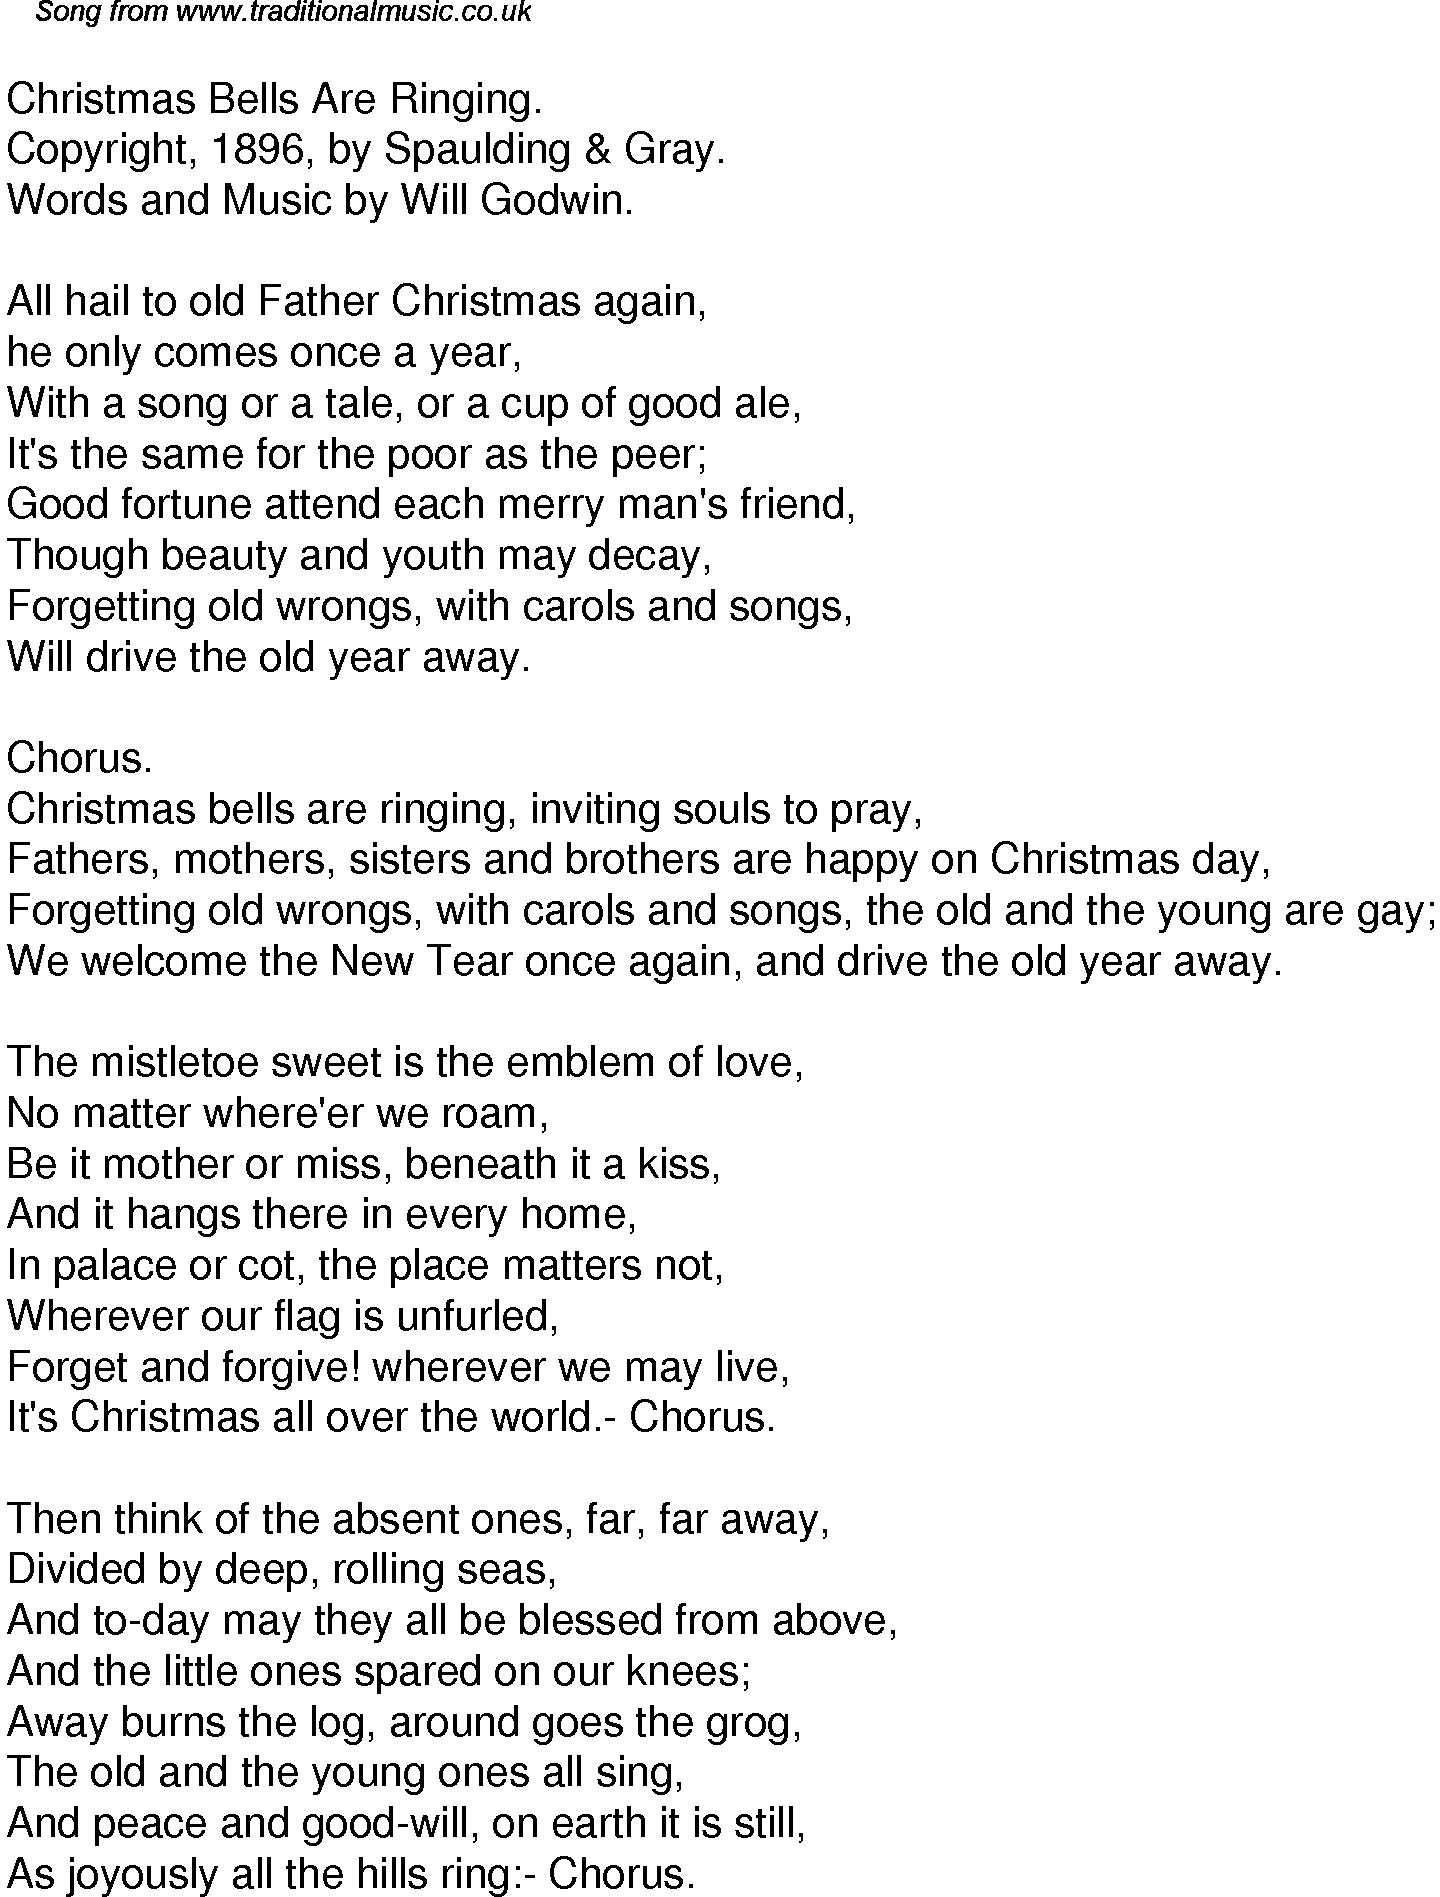 Lyrics containing the term: christmas bells